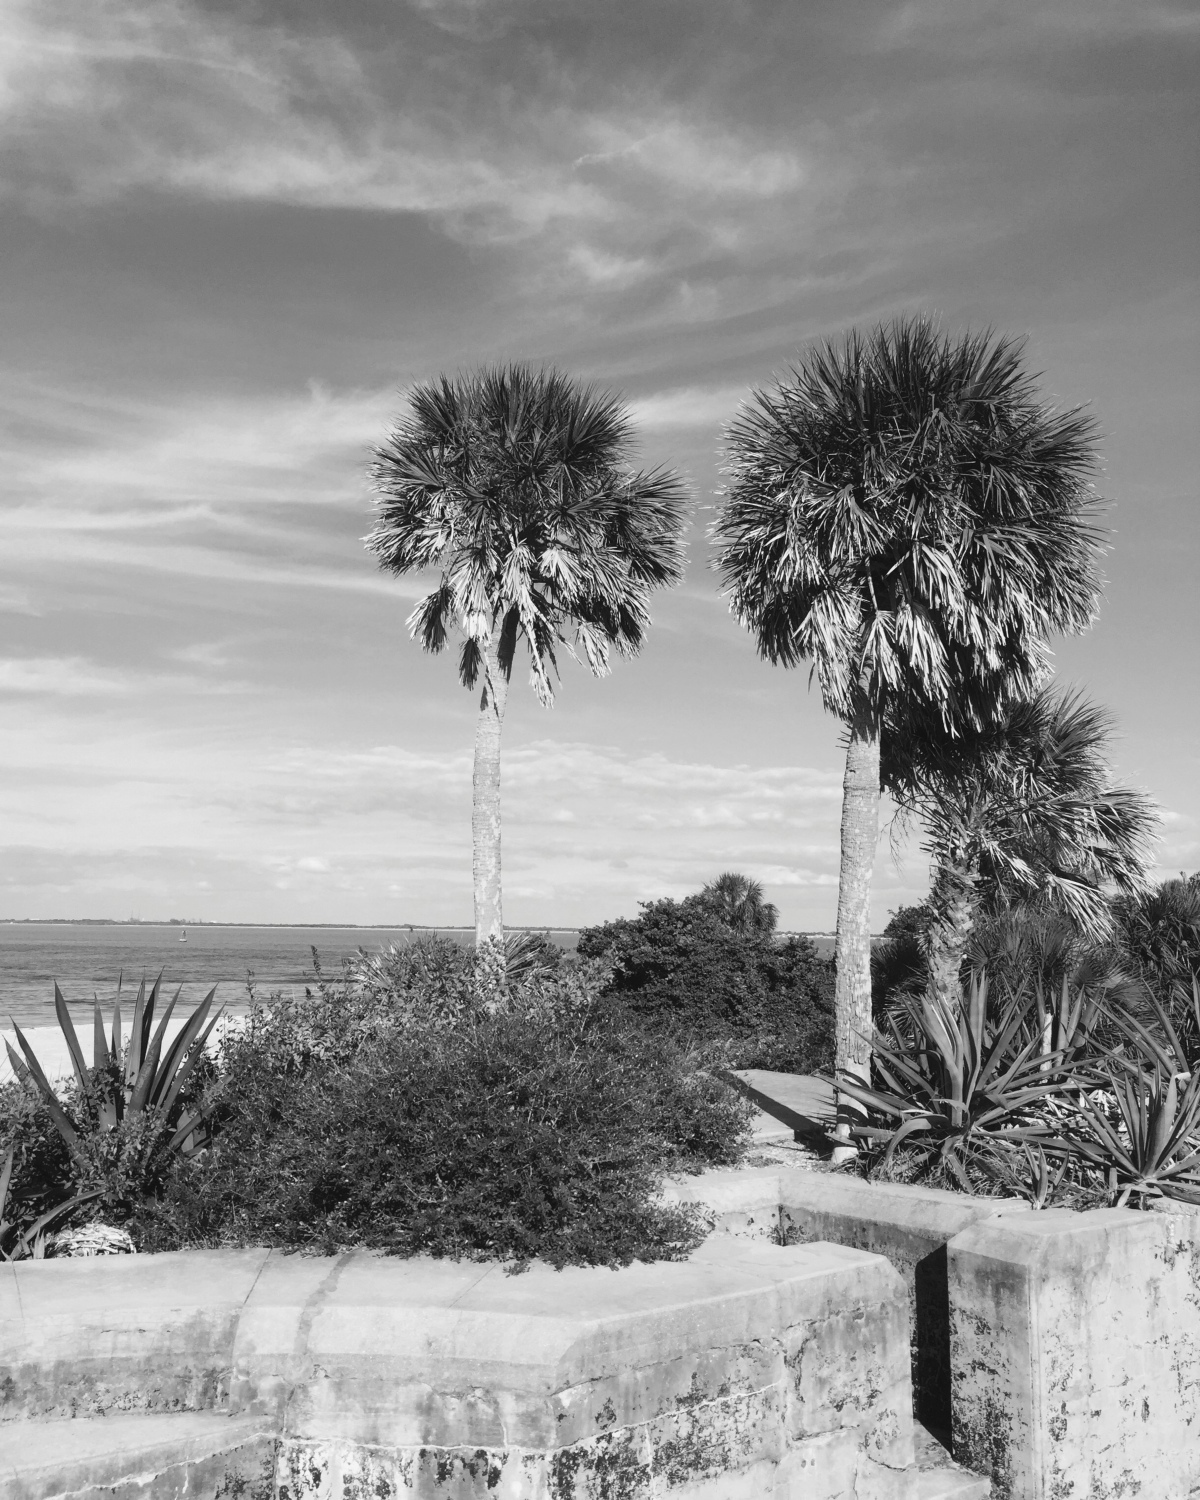 NATURE ON EGMONT KEY